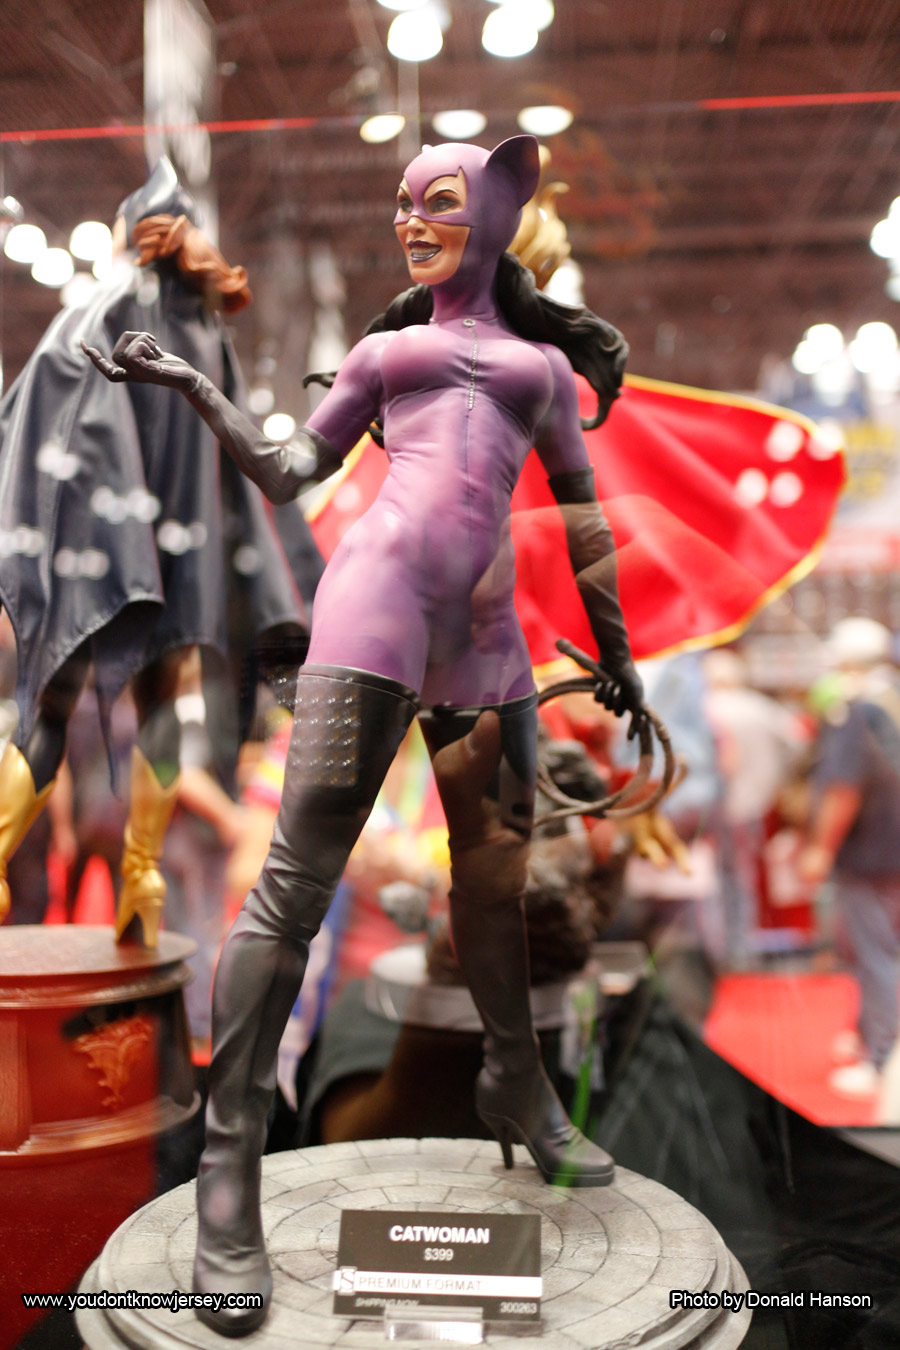 Catwoman_Sideshow_Toys_0269